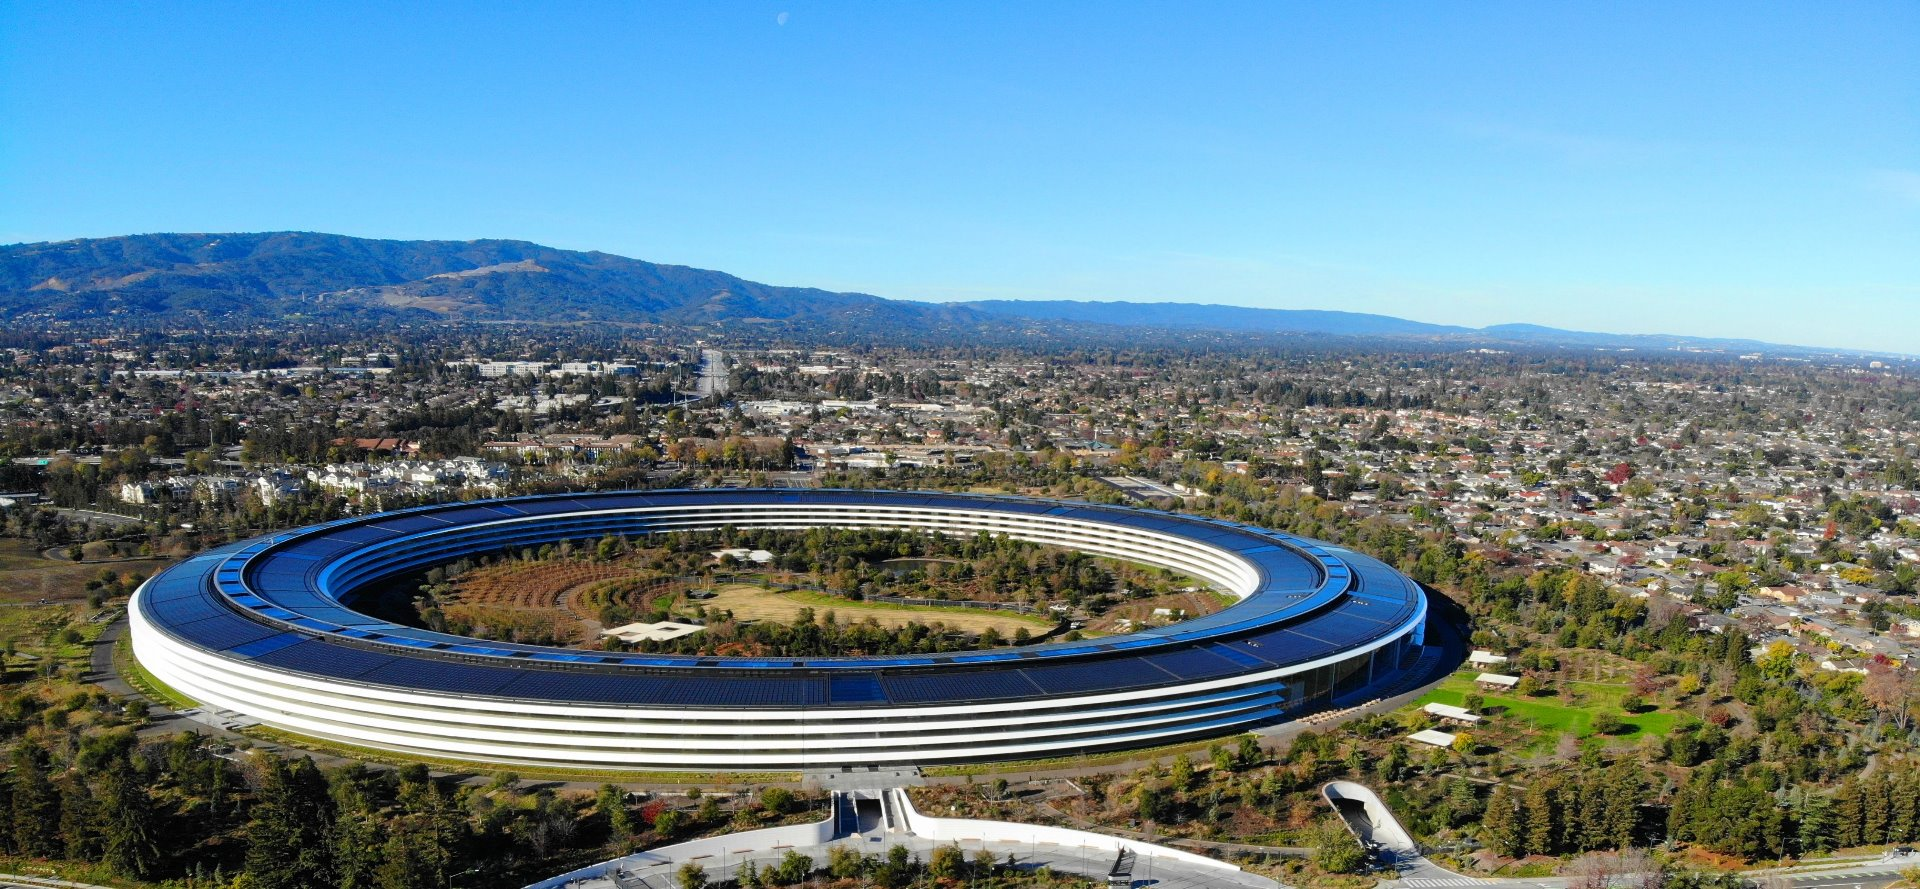 apple_spaceship_ariel_views_apple_park_silicon_valley_guided_tour